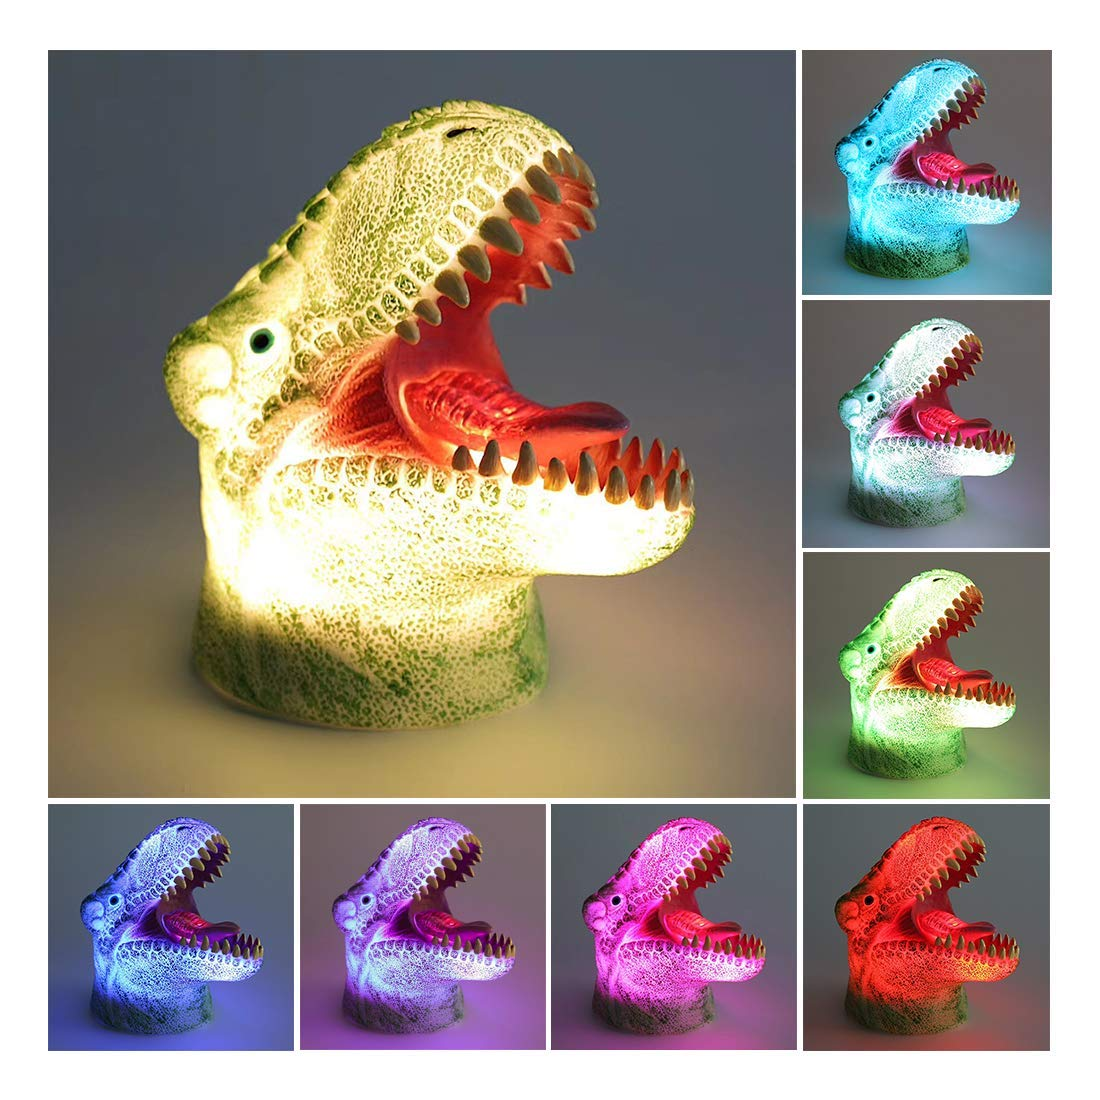 [Wall Adapter Included] 3D LED Dinosaur Night Light for Kids, Rechargeable Baby Nursery Nightlights Sensitive Tap Control 7 Color Changing Bedside Lamp for Children Boys Girls Birthday Christmas Gift